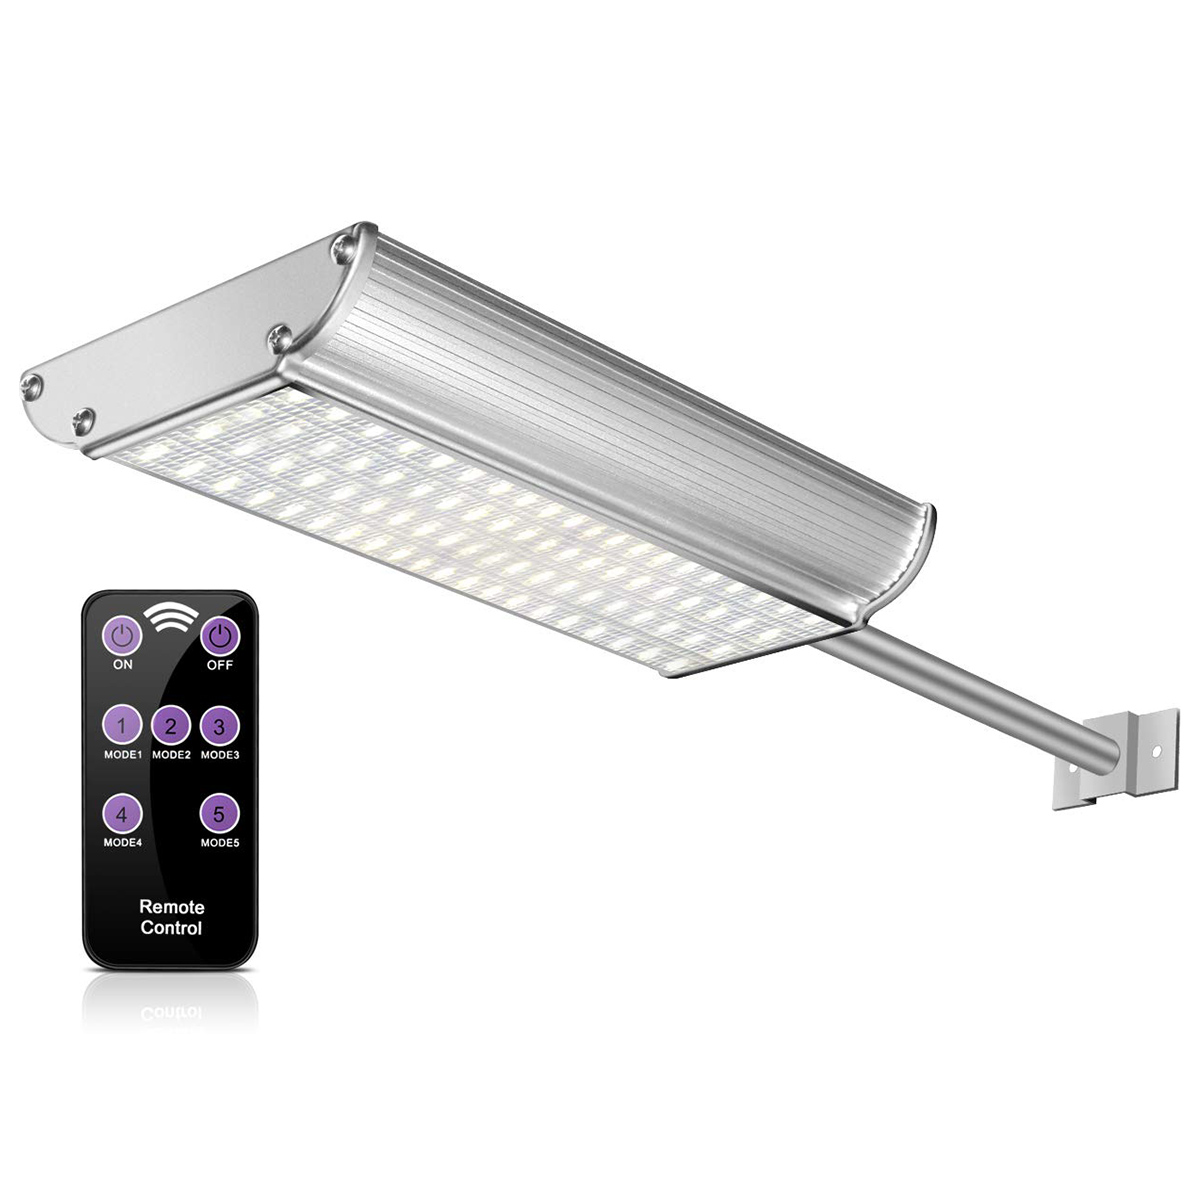 Solar Lights Outdoor With Remote Control 70 Led Wireless Motion Sensor With 5 Optional Modes Wall Sconces Ip65 Waterproof Secu